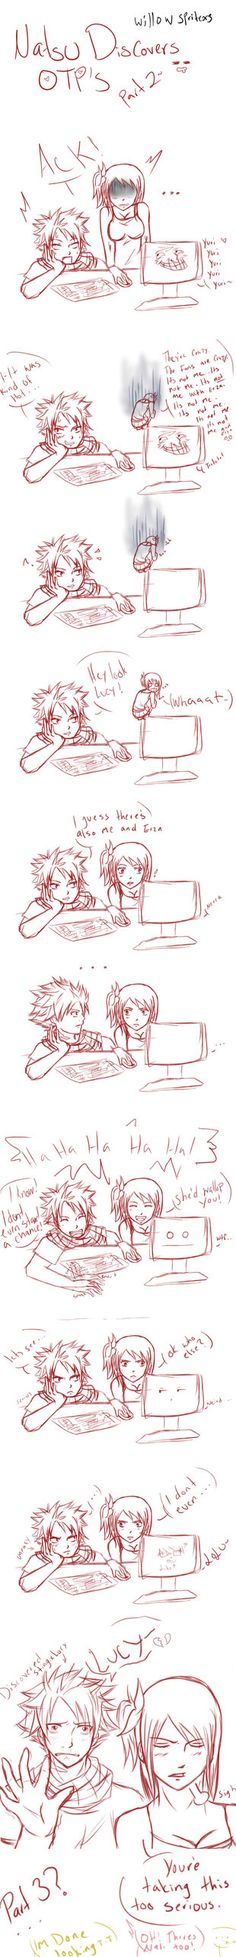 Natsu Discovers OTP's - Nalu II by willowspritex3 on DeviantArt